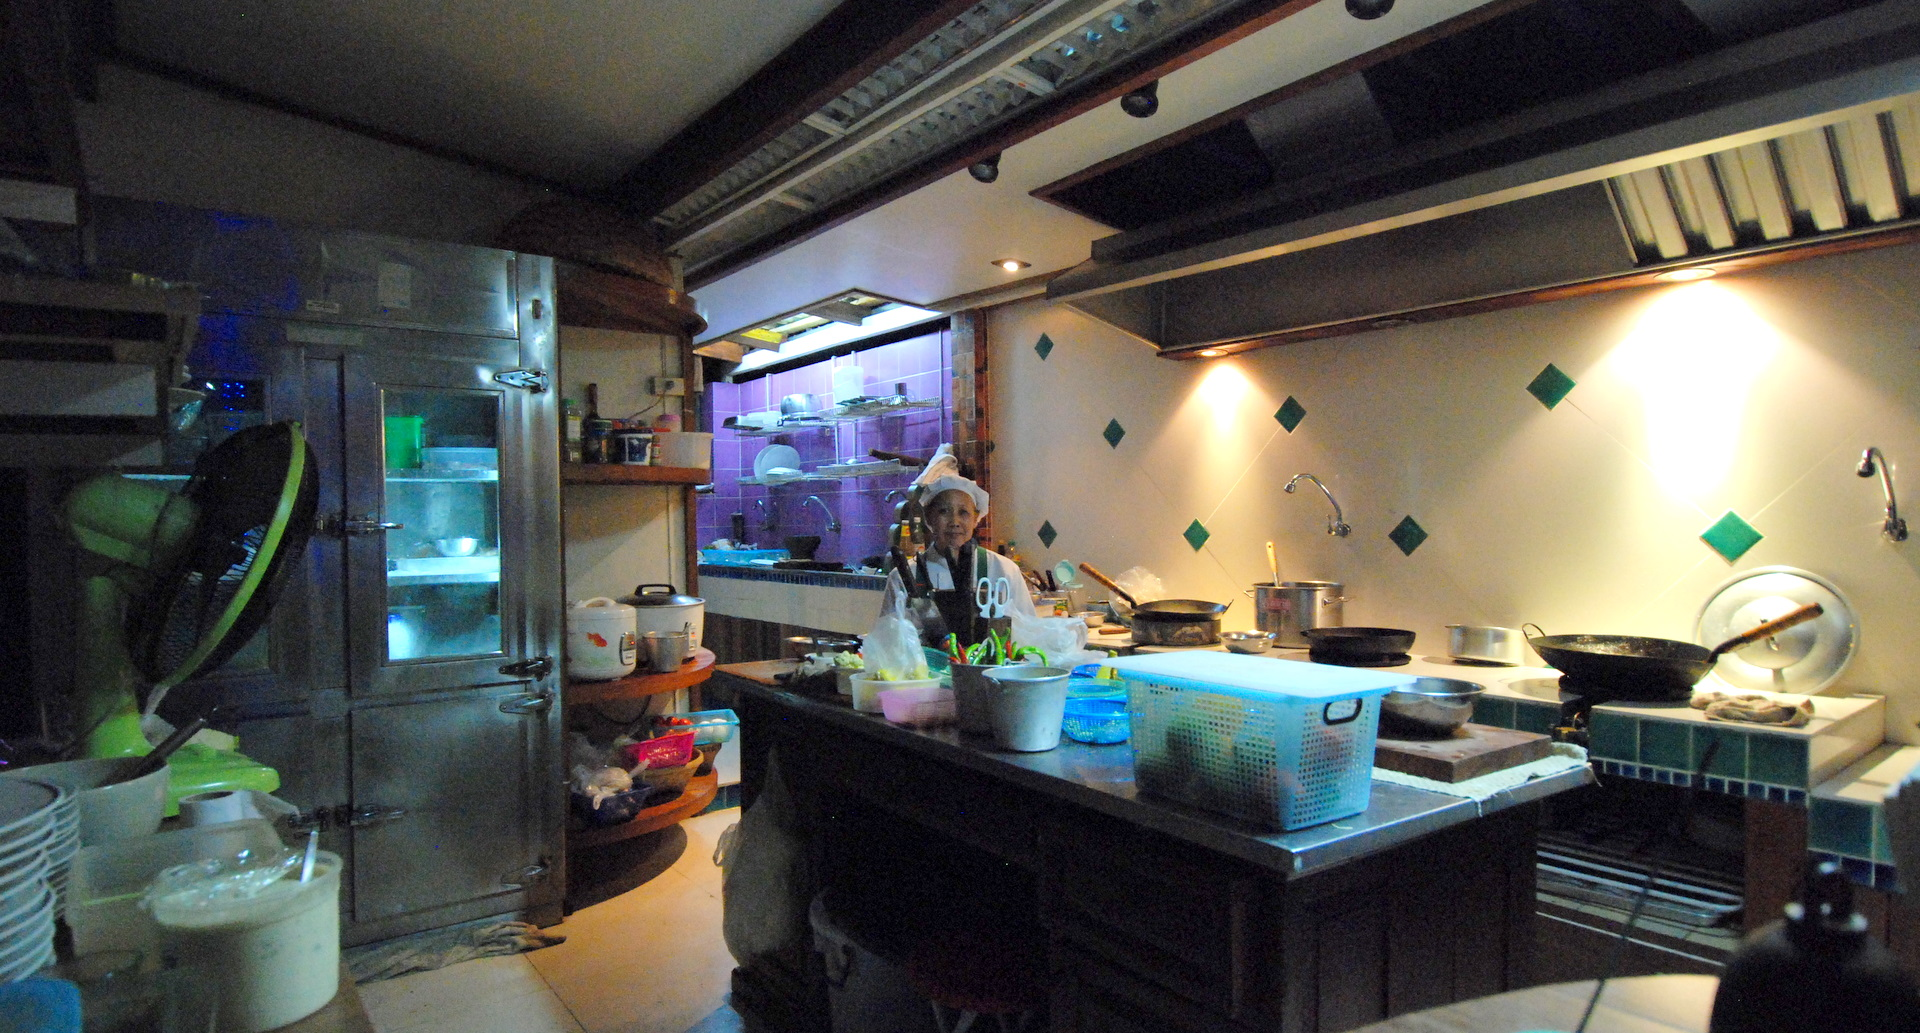 File chiang mai restaurant kitchen jpg wikimedia commons for Kitchen 8 restaurant